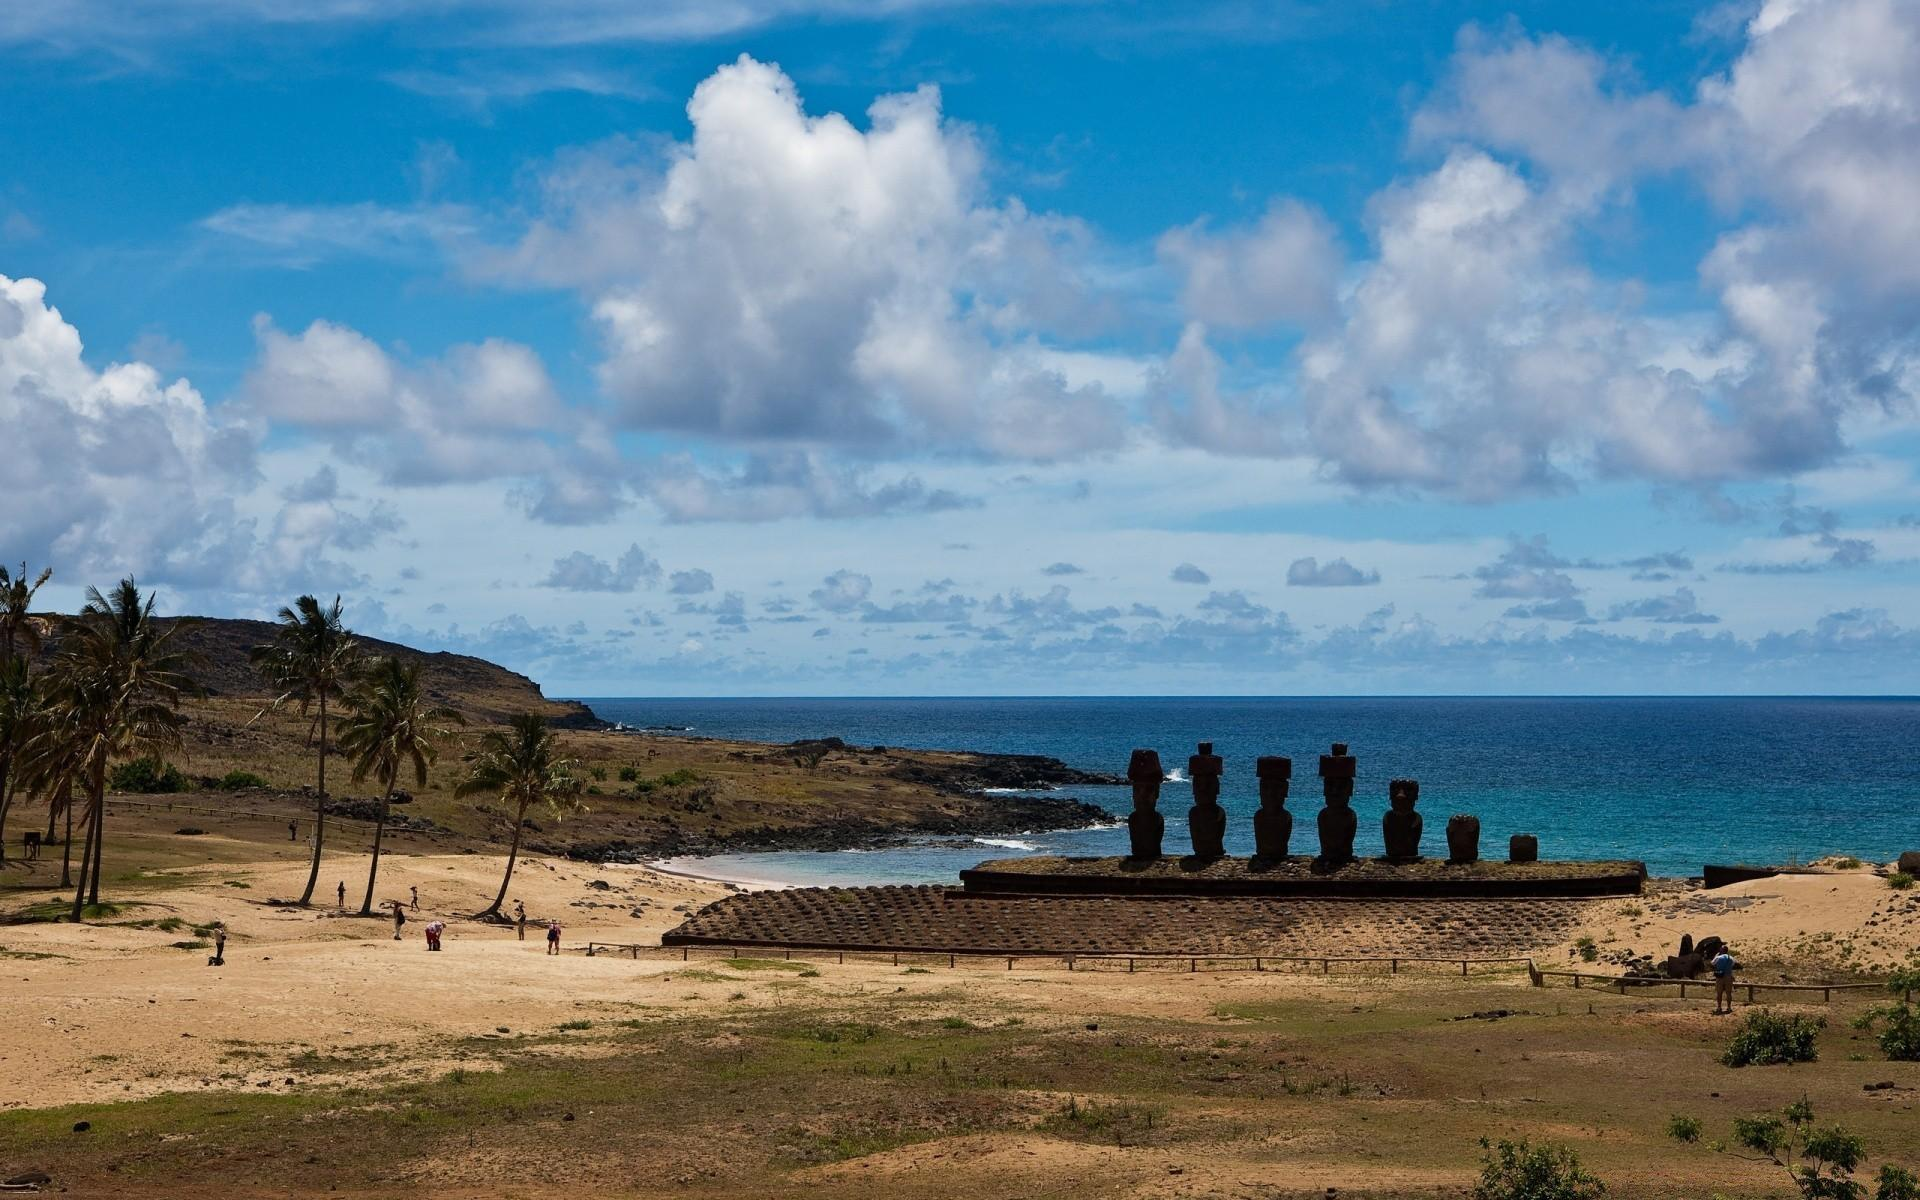 Easter Island Statues. Android wallpapers for free